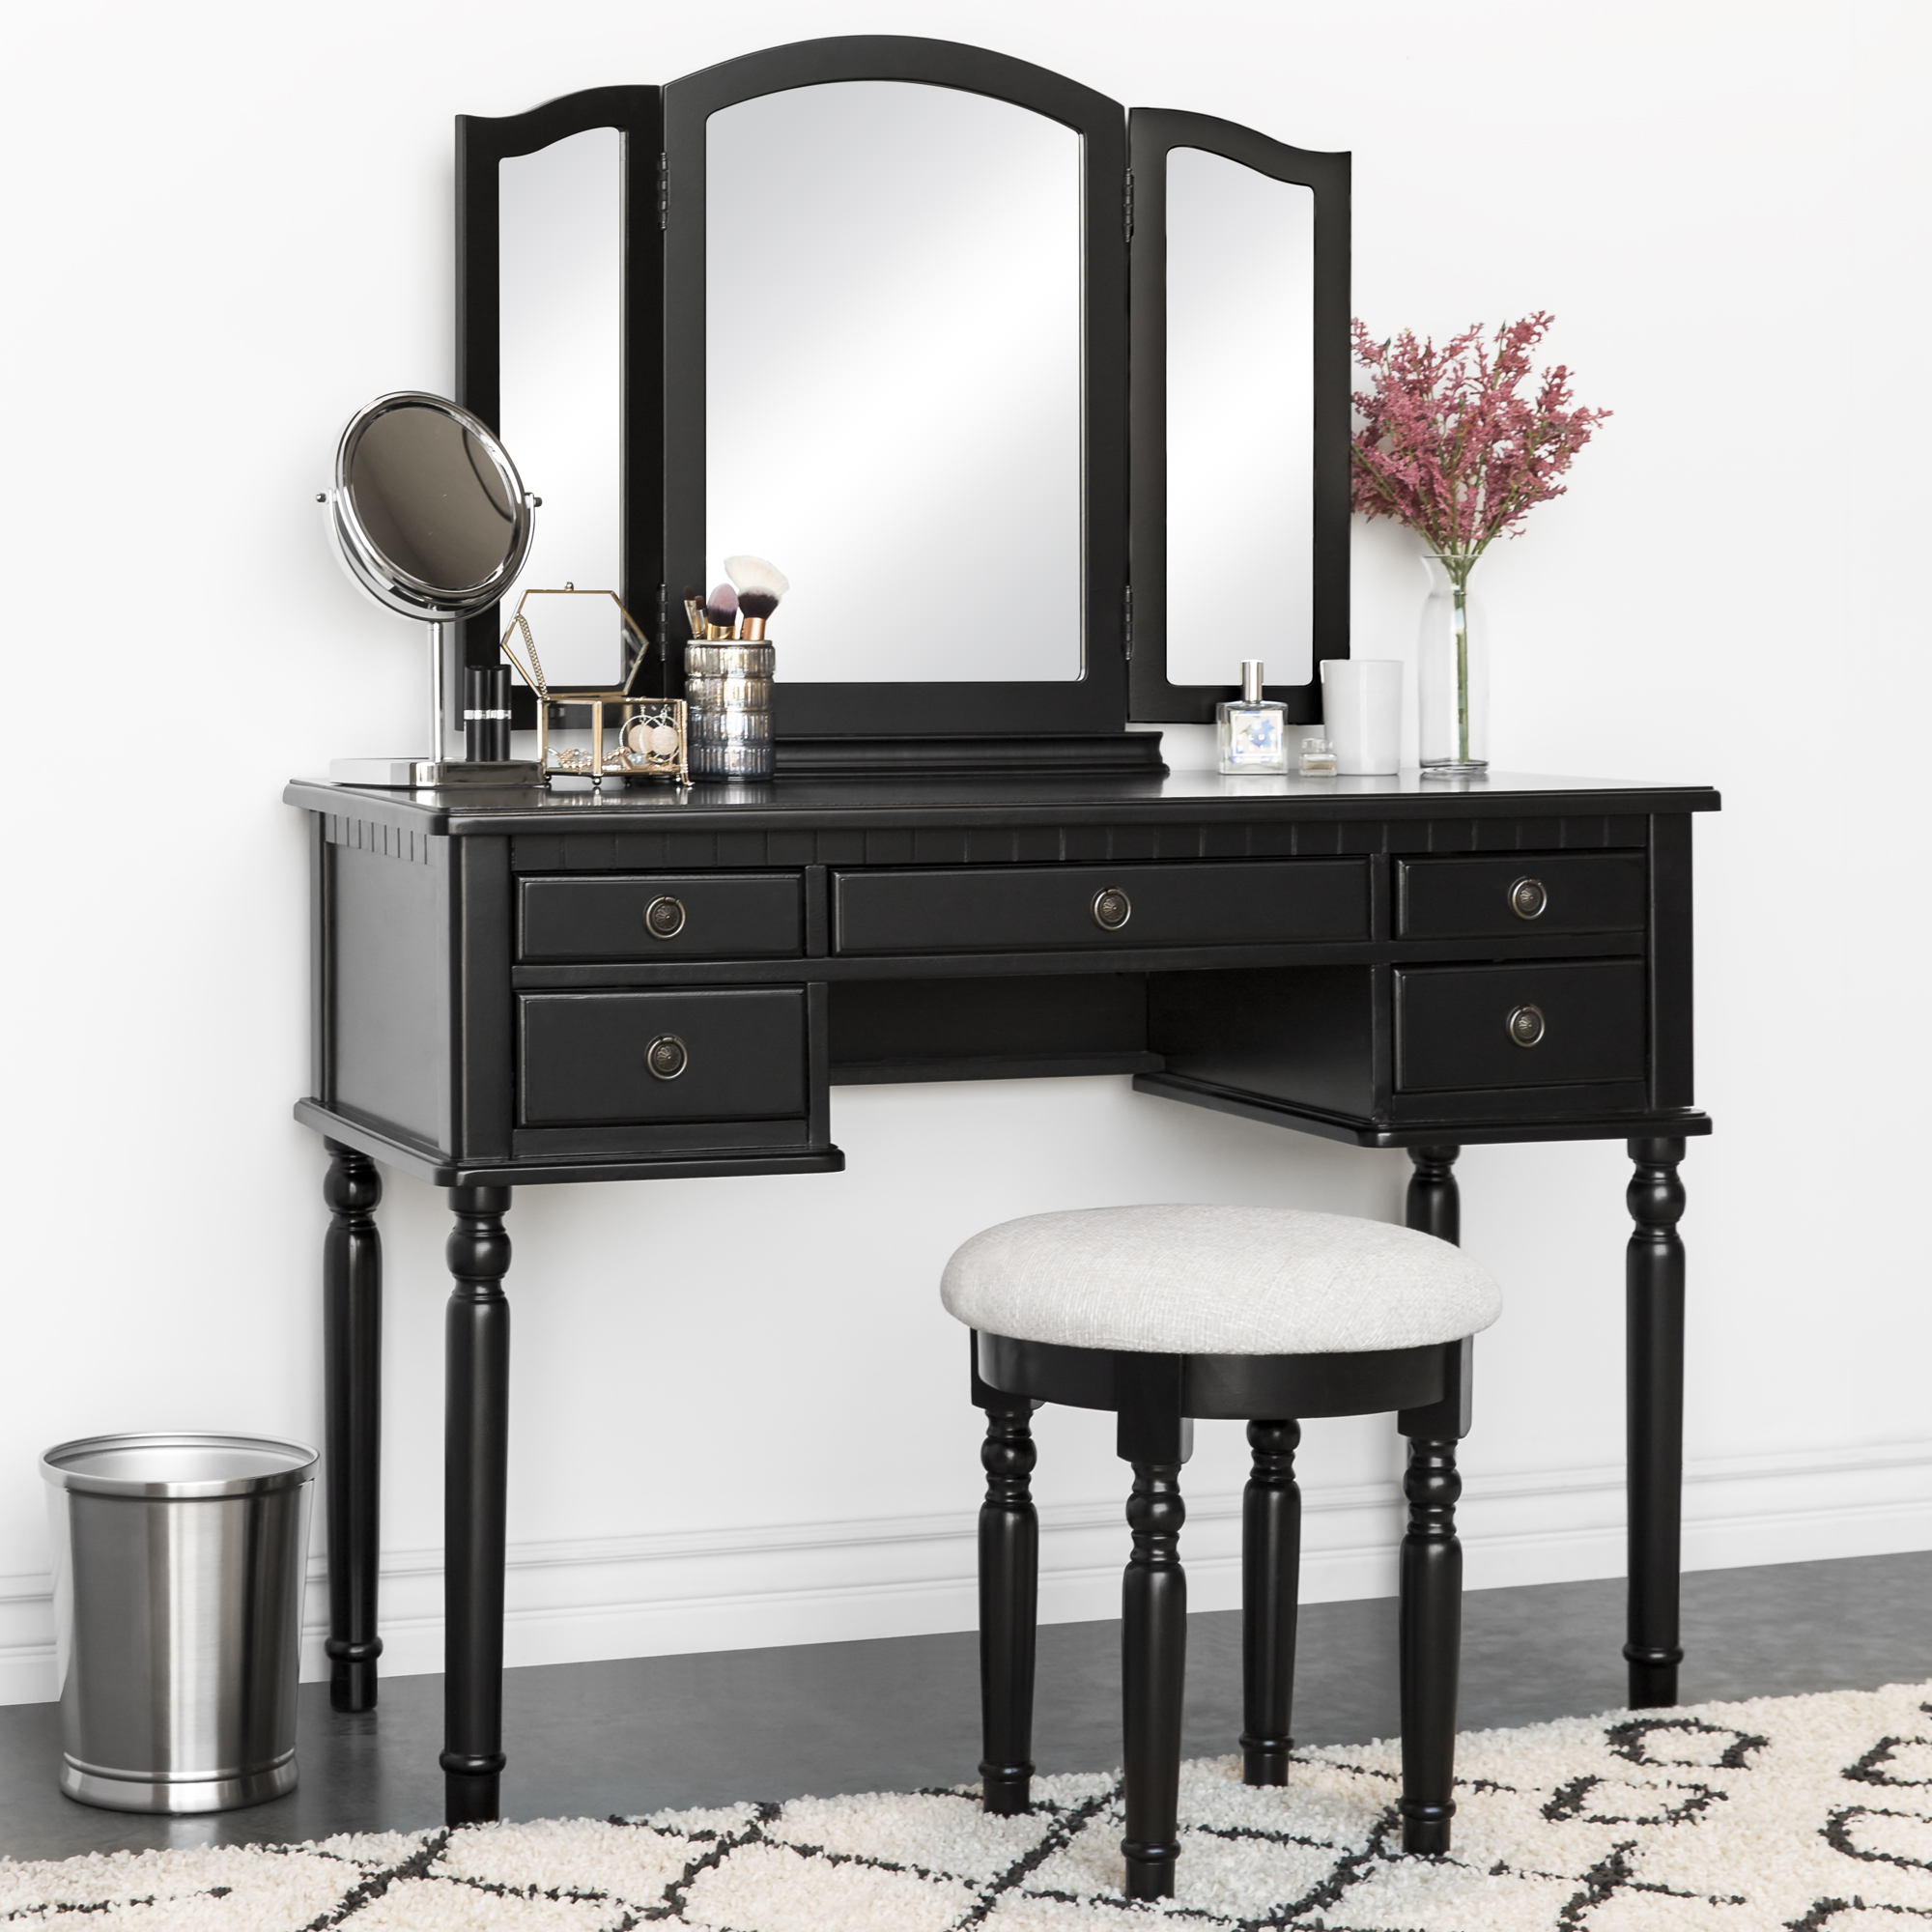 Best Choice Products Makeup Cosmetic Beauty Vanity Dressing Table Set w  Tri-Fold Mirror, Stool Seat, 5 Drawers Black by Best Choice Products